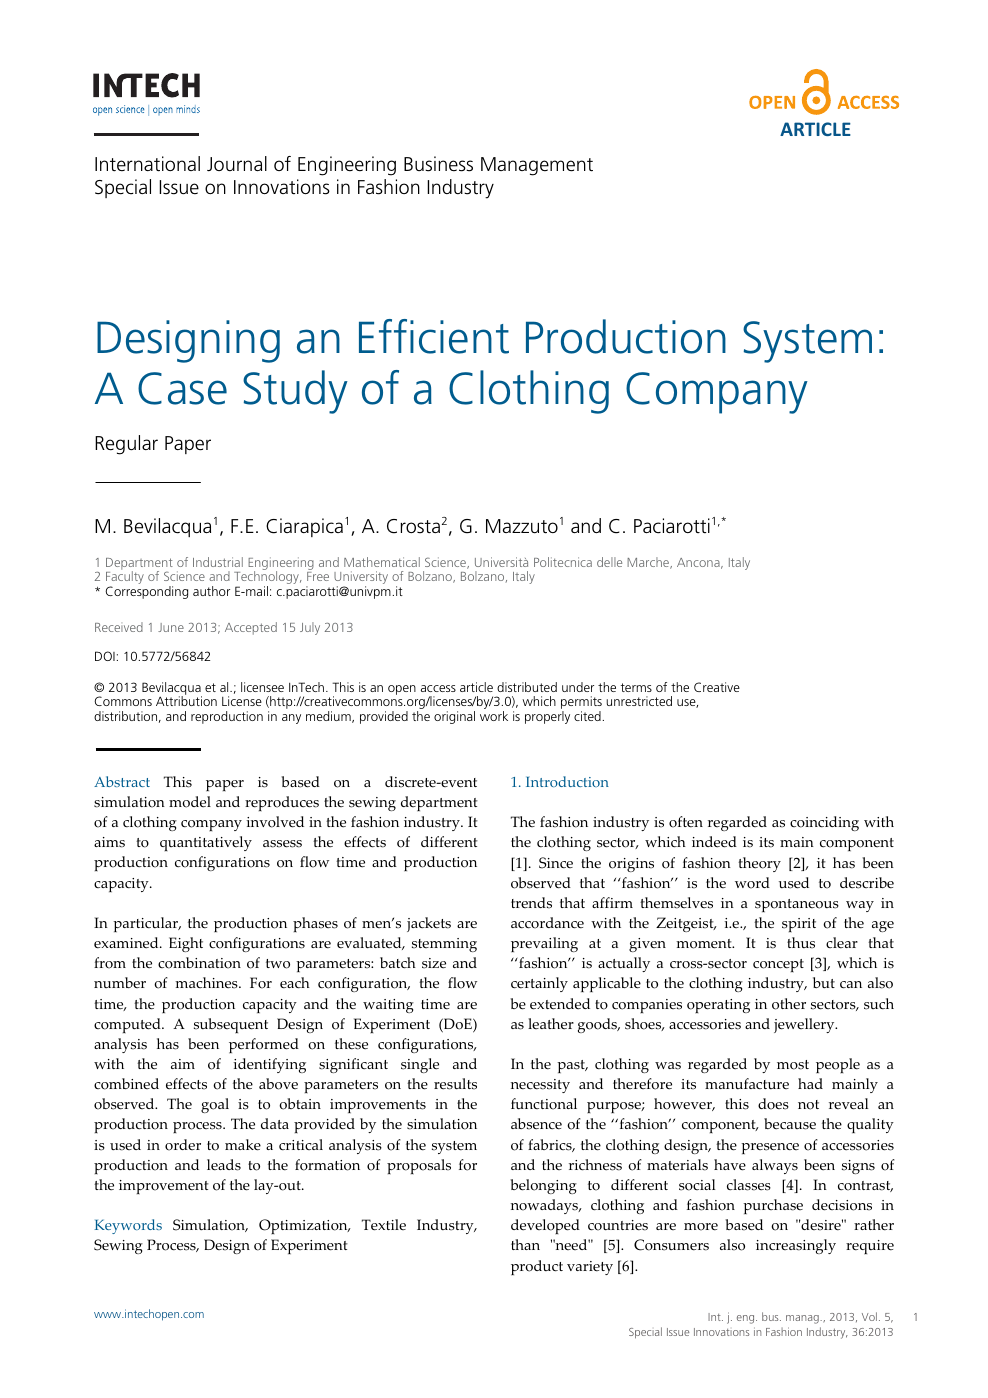 Designing An Efficient Production System A Case Study Of A Clothing Company Topic Of Research Paper In Chemical Engineering Download Scholarly Article Pdf And Read For Free On Cyberleninka Open Science